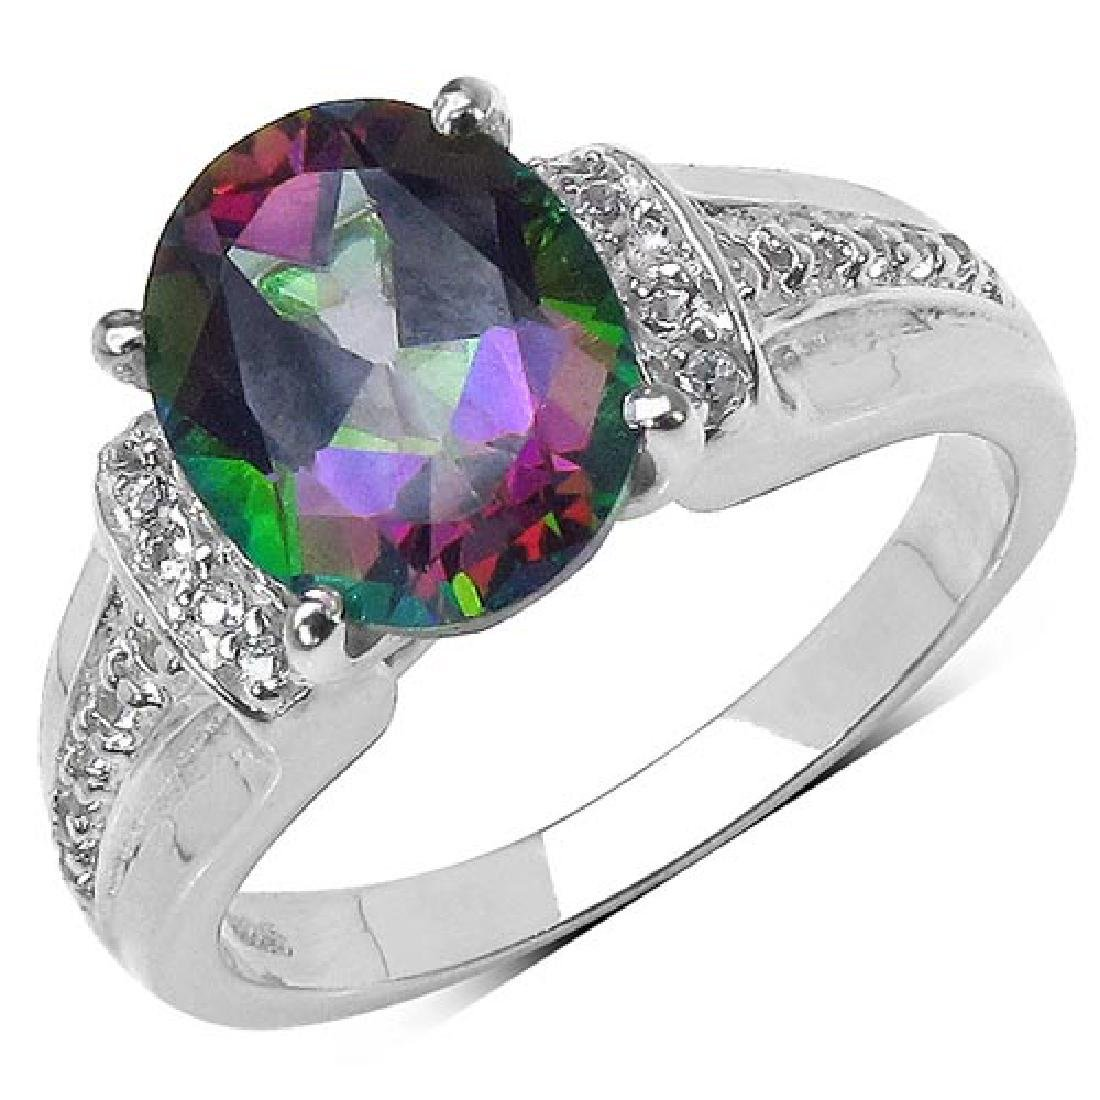 3.40 ct. t.w. Mystic Topaz and White Topaz Ring in Ster